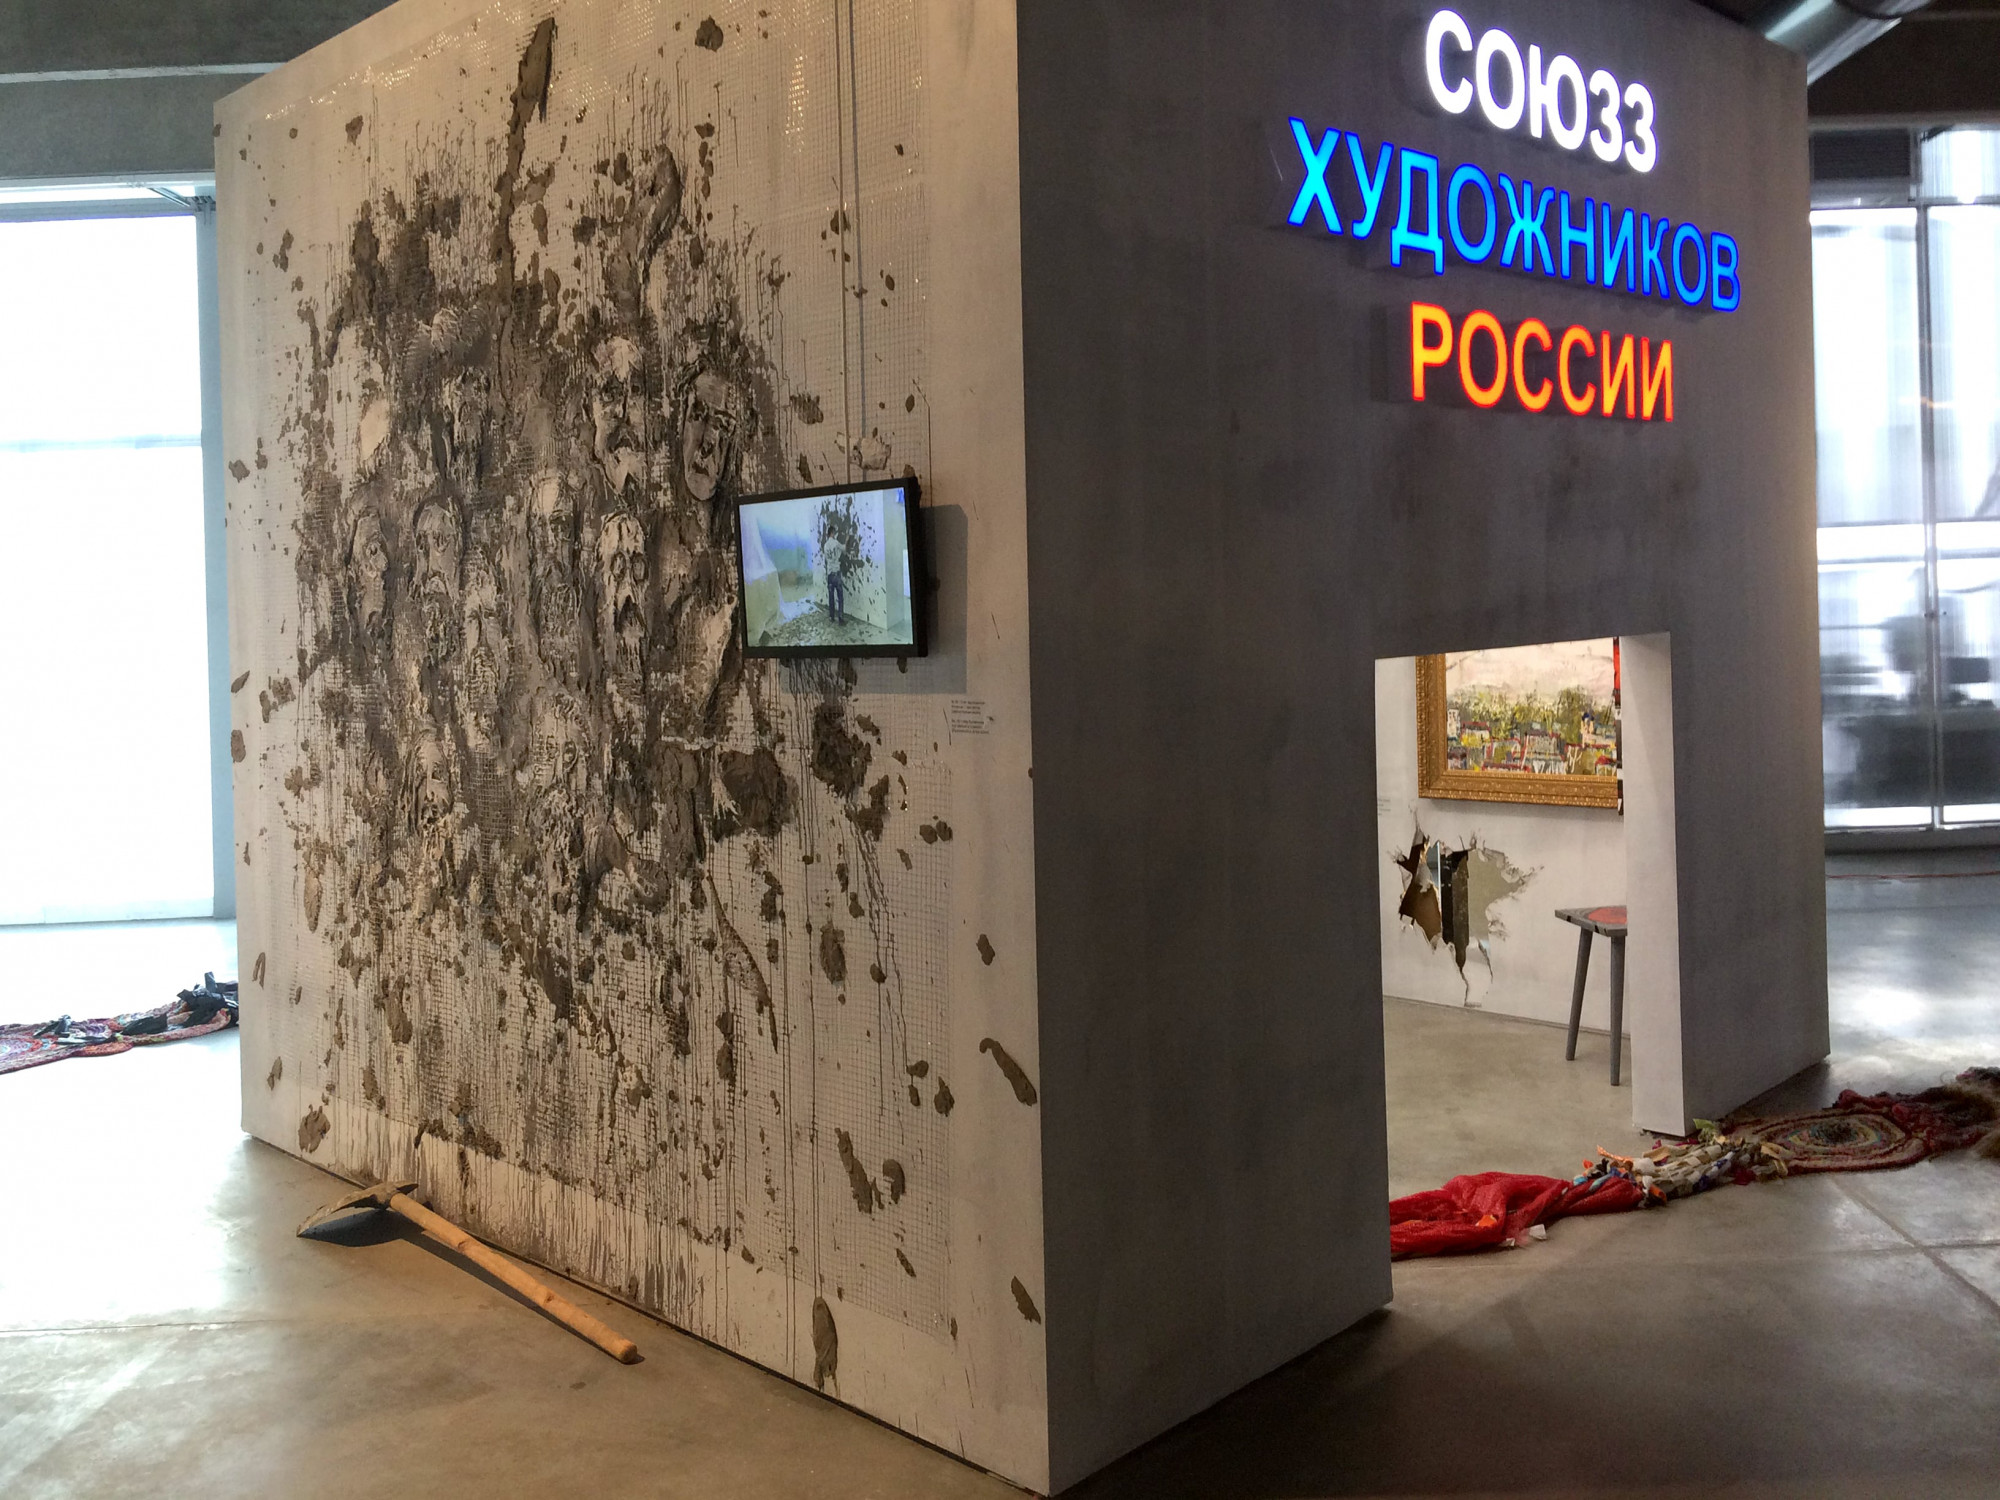 33+1 pavilion at the 1st Triennial of Russian Art, Garage MCA, Moscow, 2017